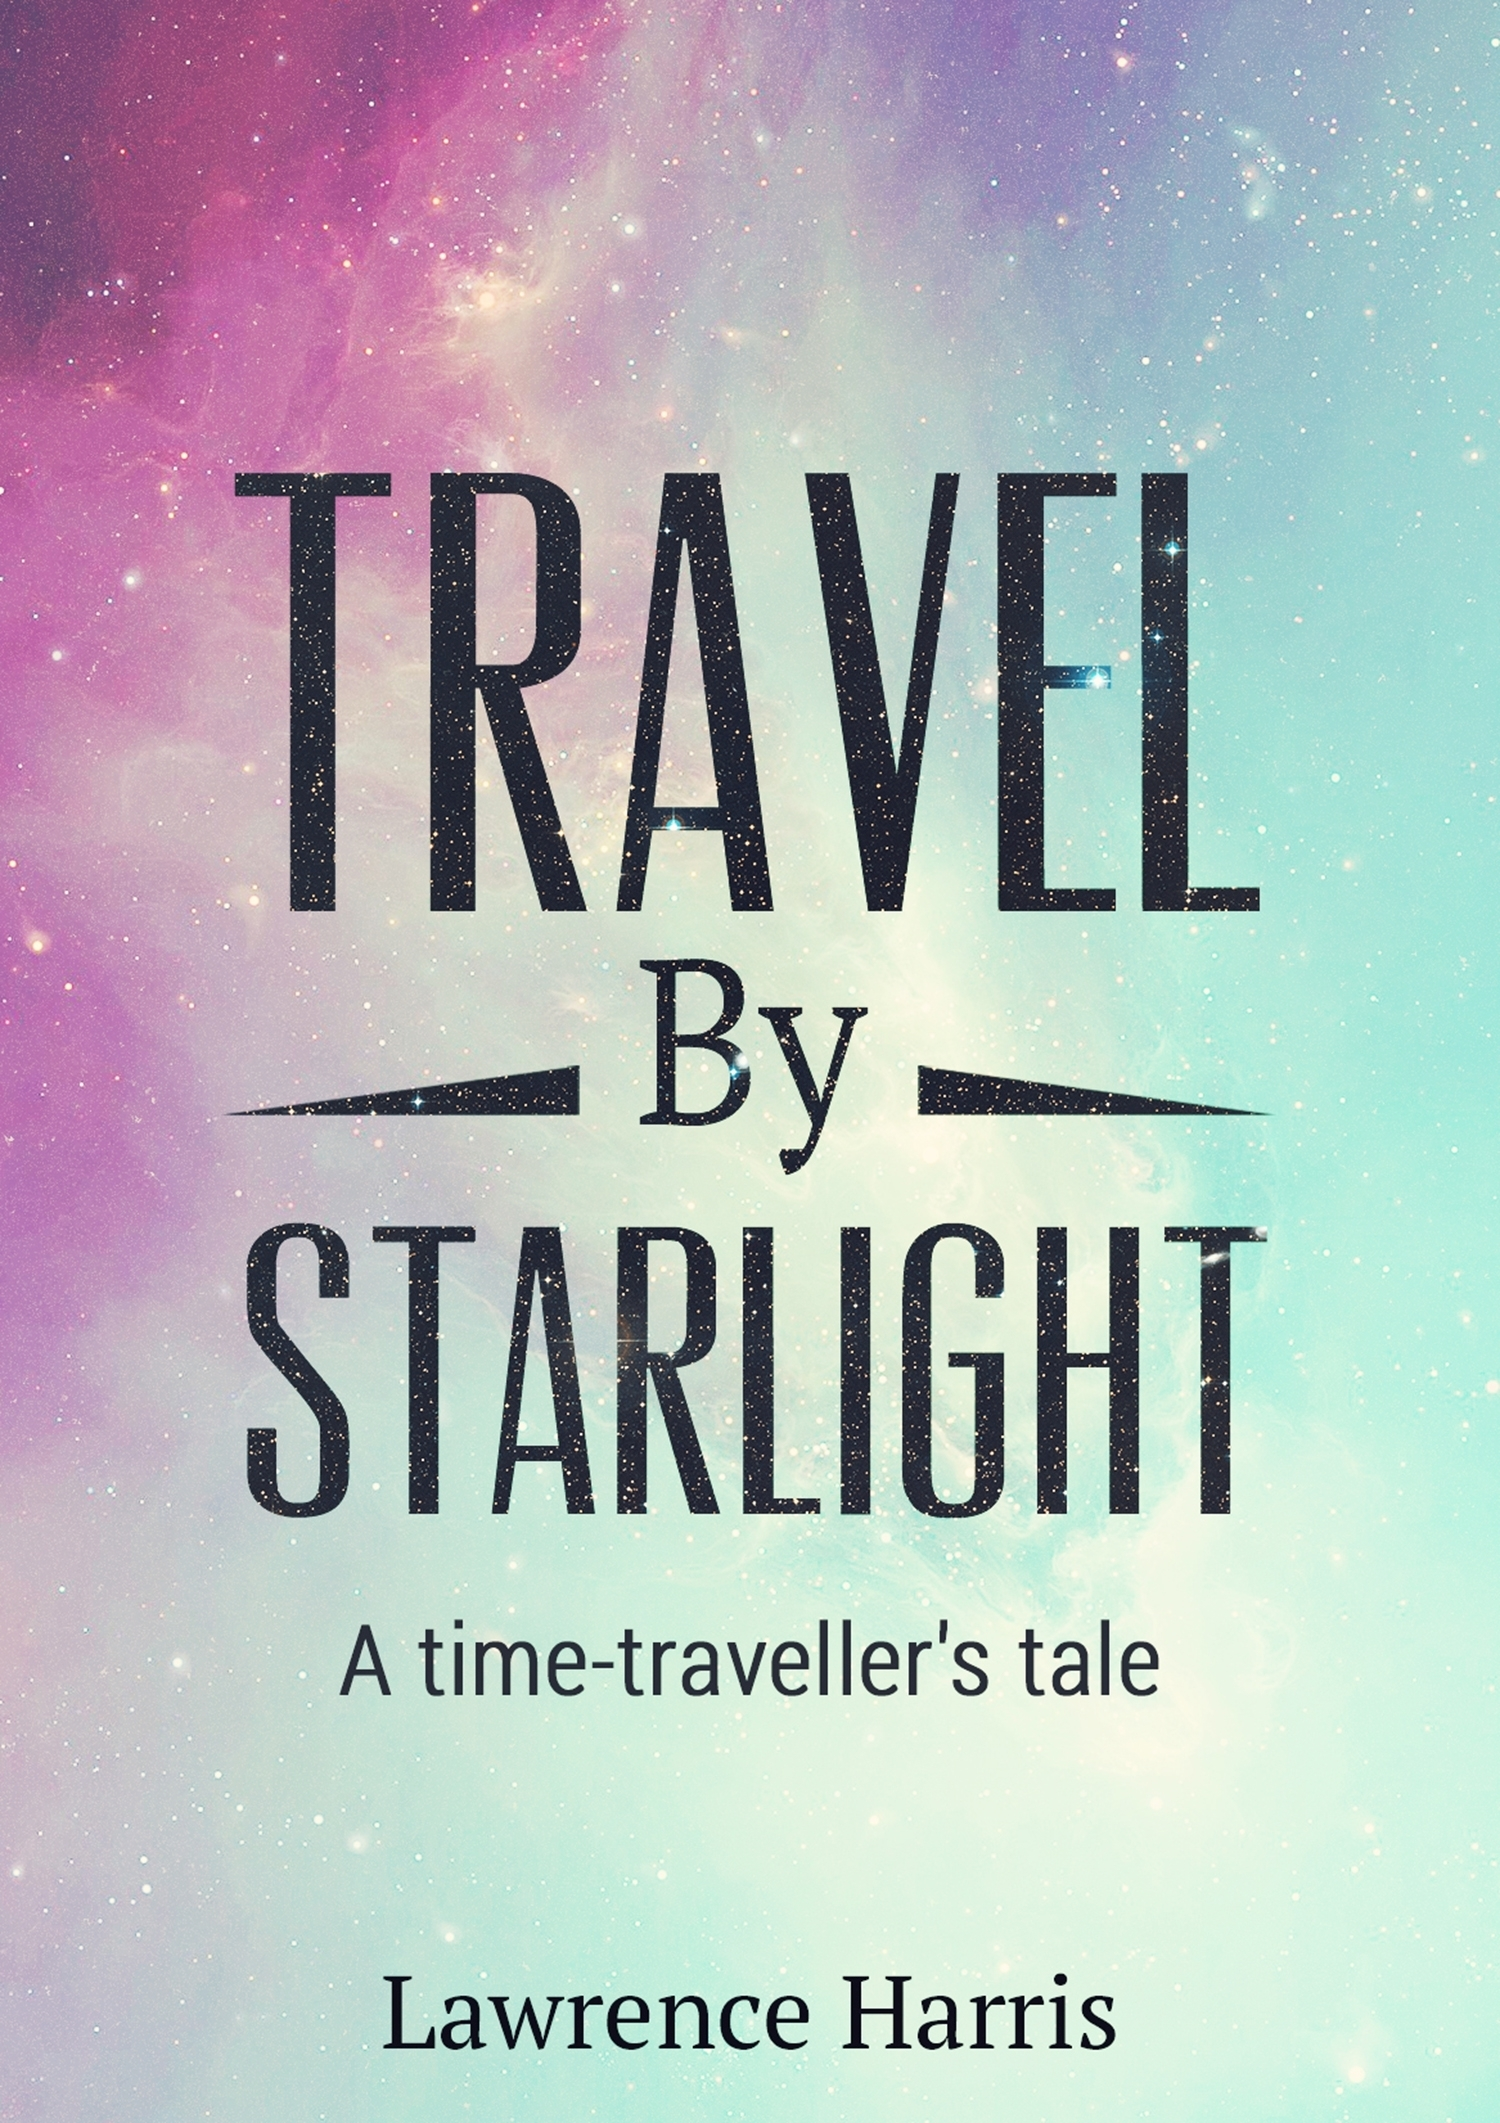 Travel Starlight by Lawrence Harris